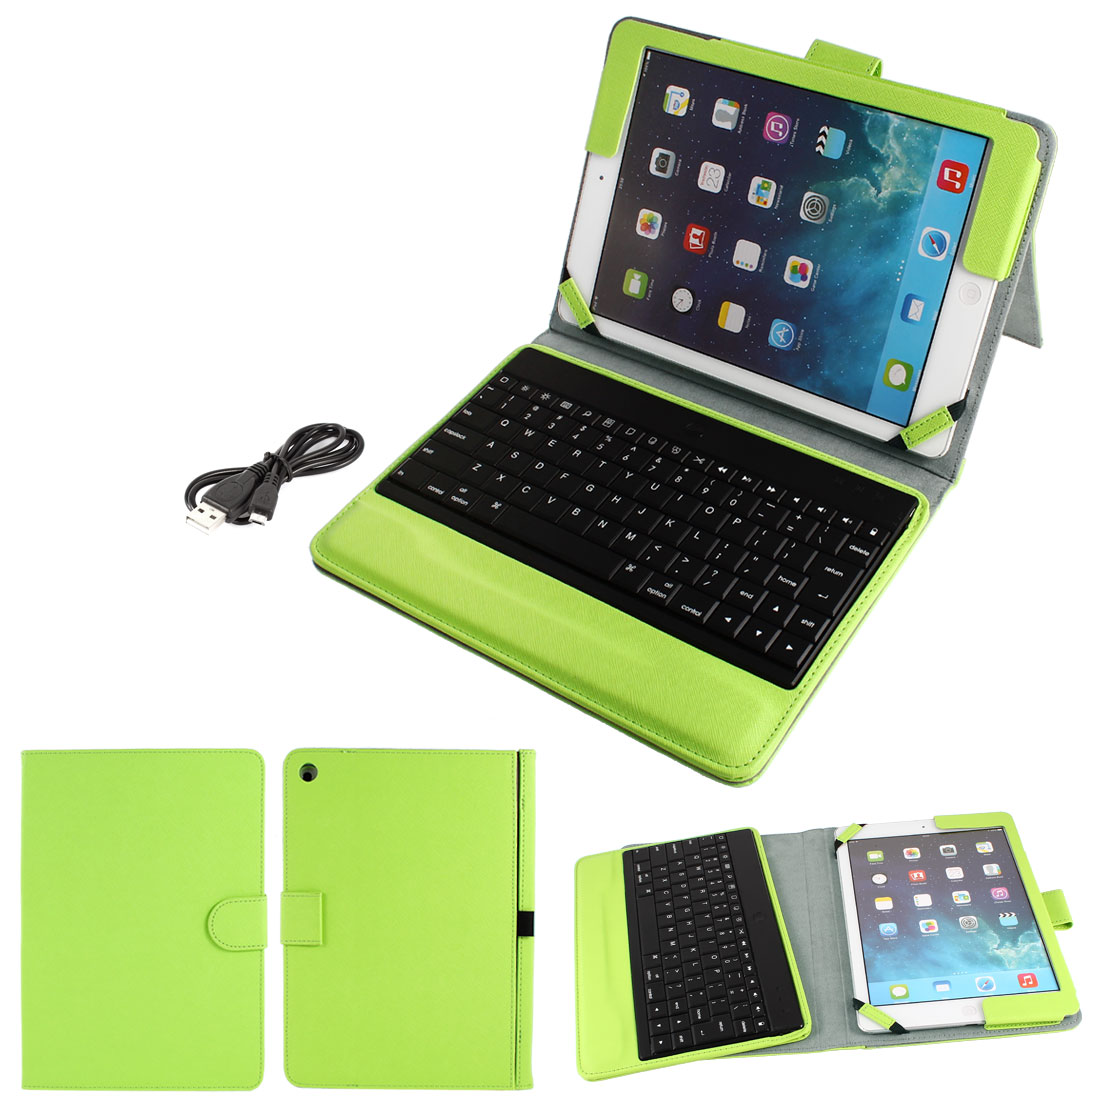 Wireless bluetooth Keyboard PU Leather Stand Case Protector Green for iPad 2 3 4